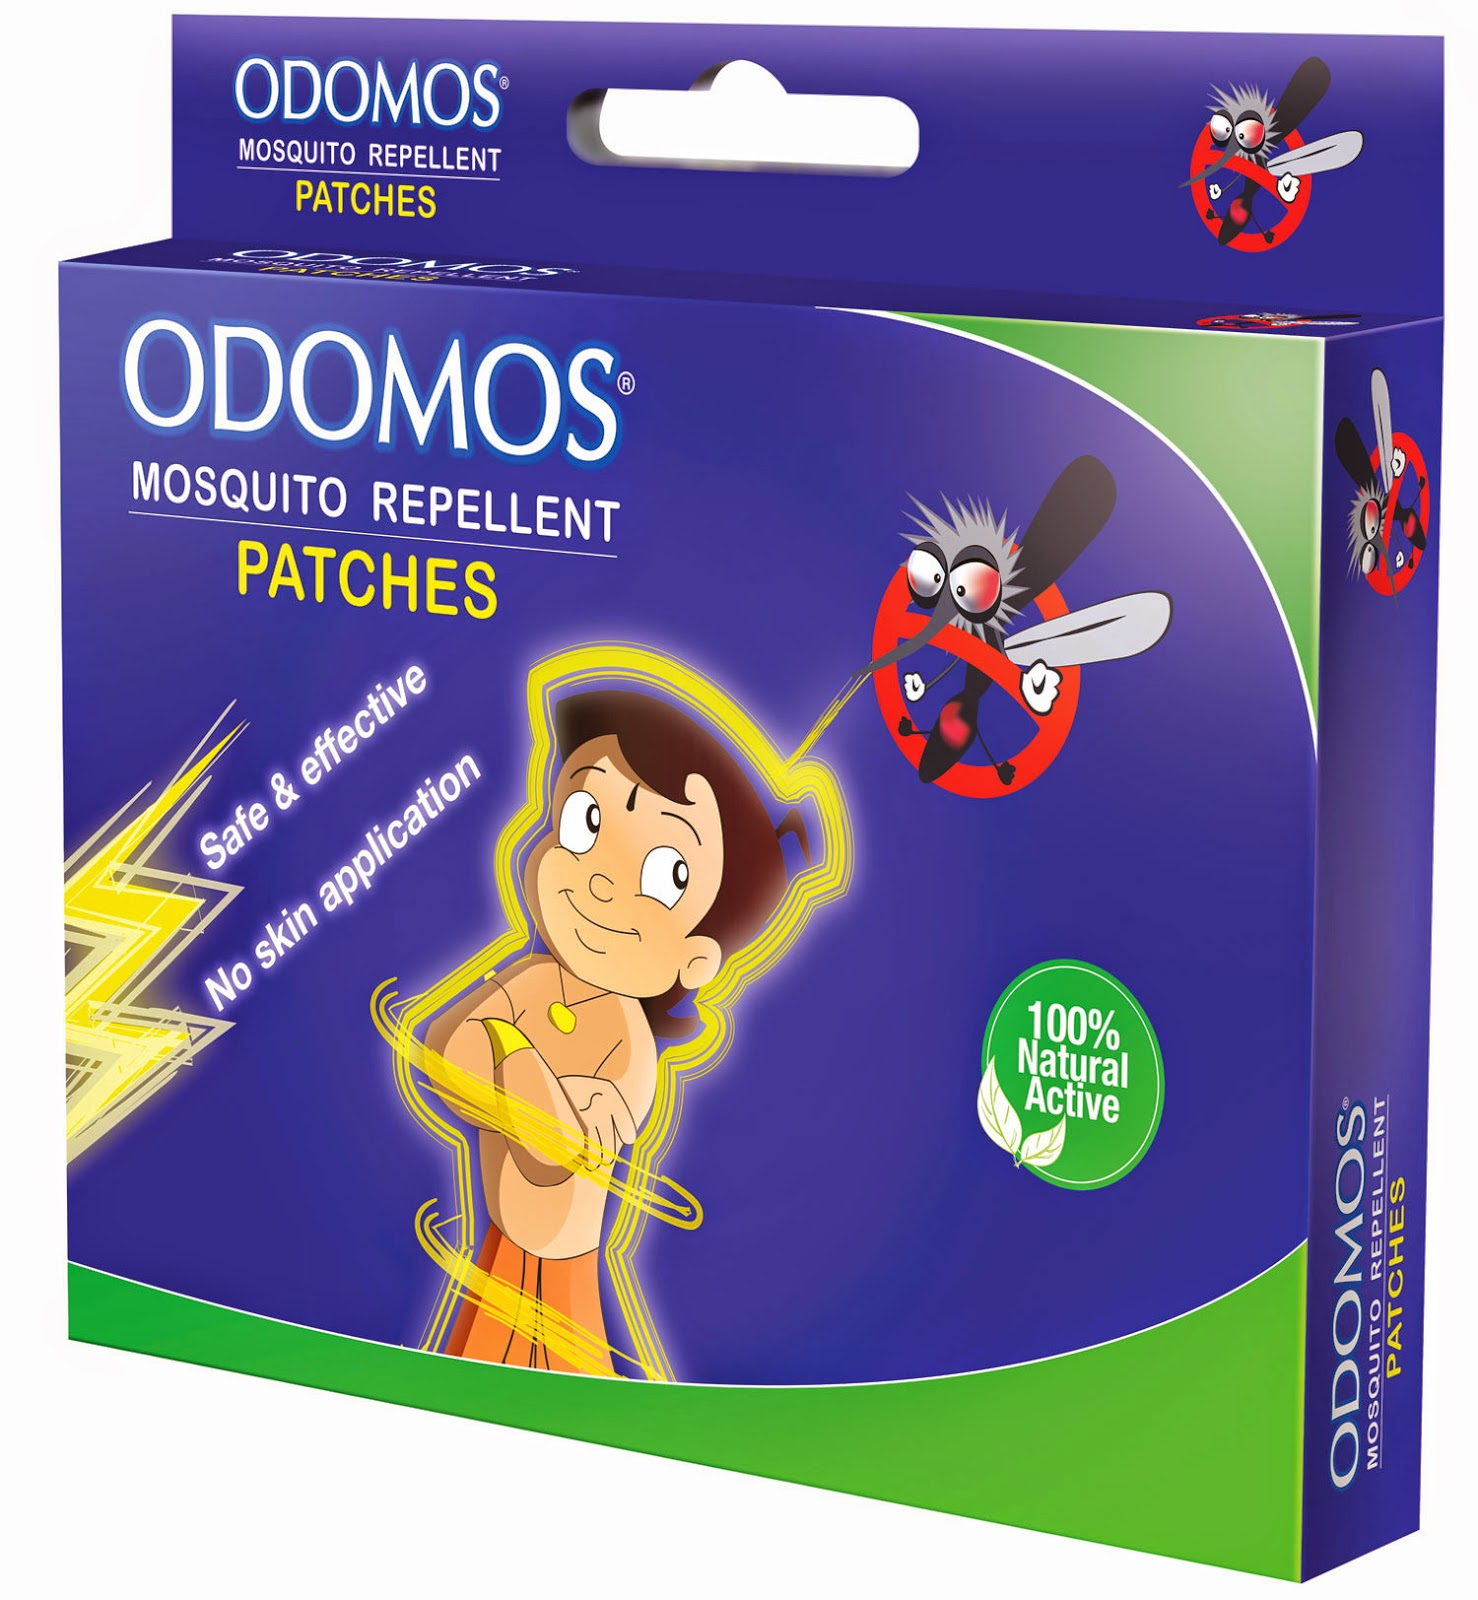 Odomos Mosquito Repellent Patches - Home Living